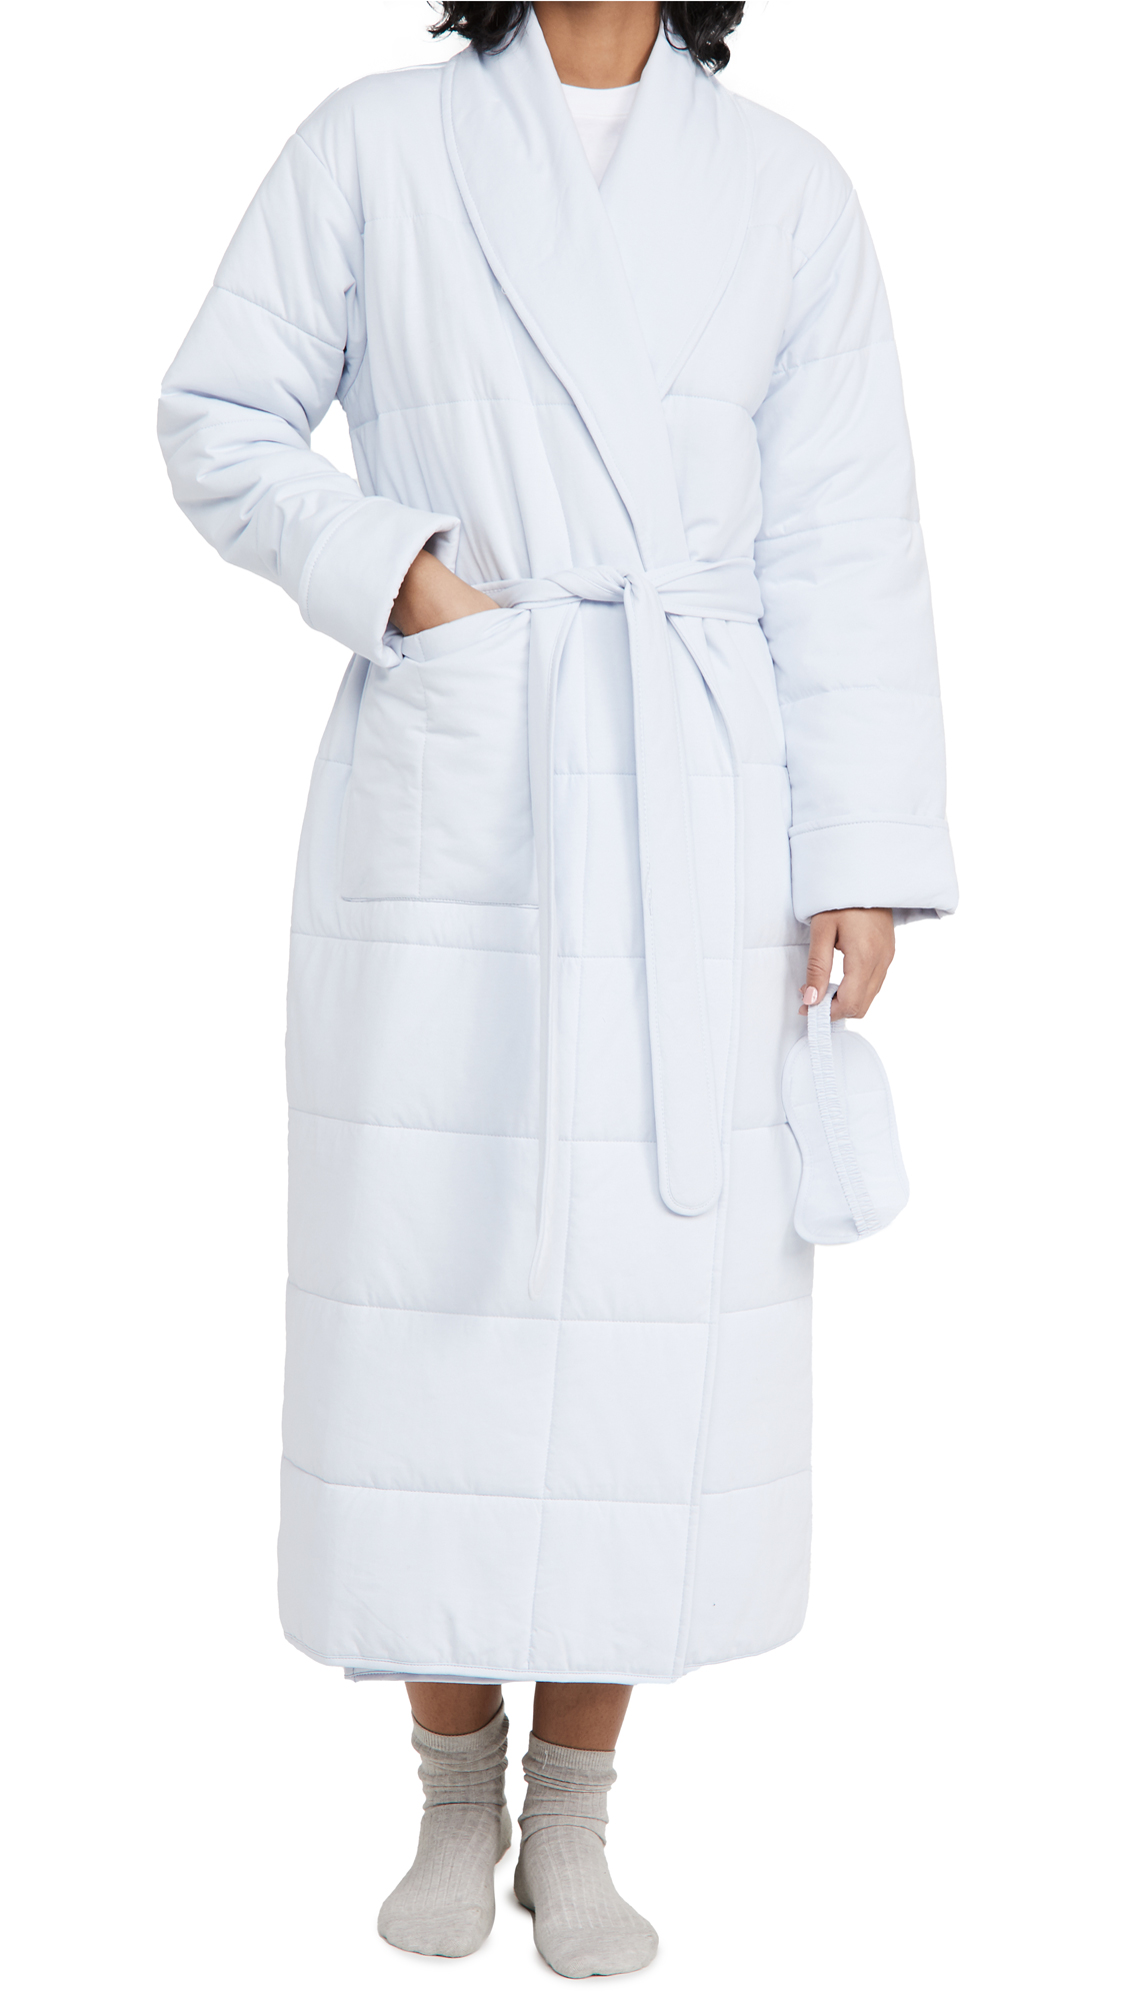 Skin SIERRA ROBE WITH EYEMASK